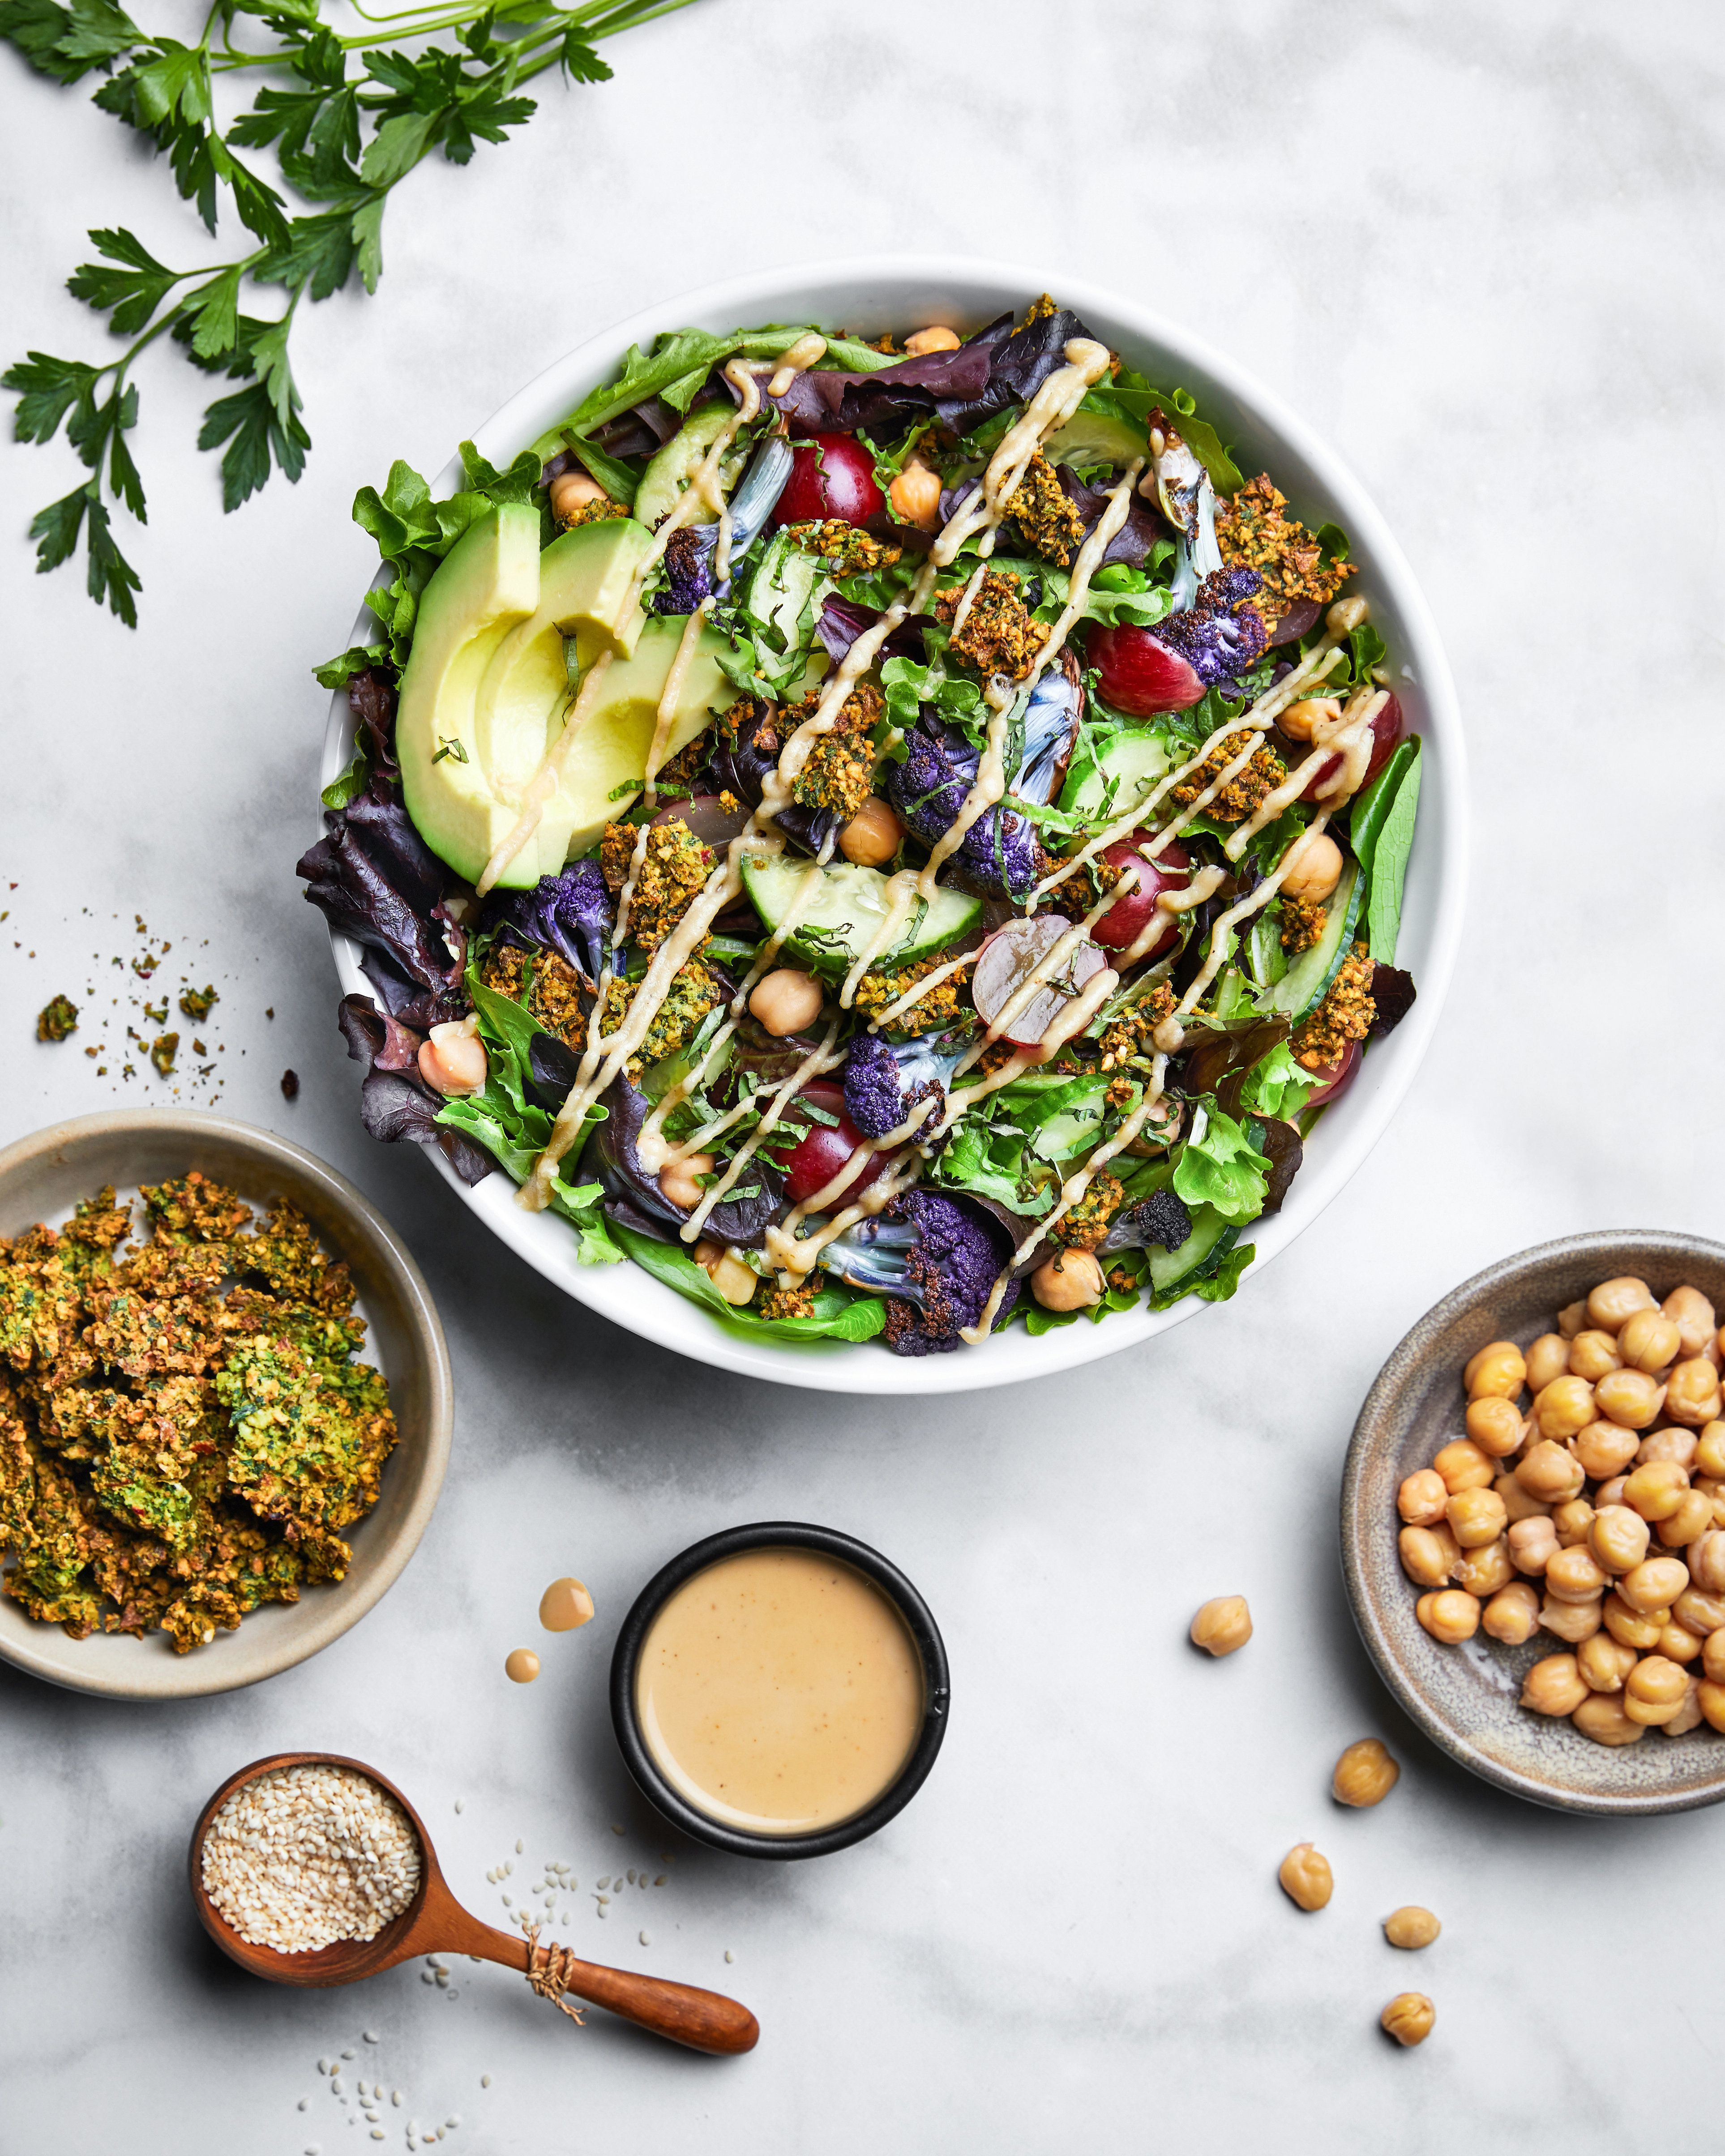 Healthy Salad Dressing Brands For Weight Loss